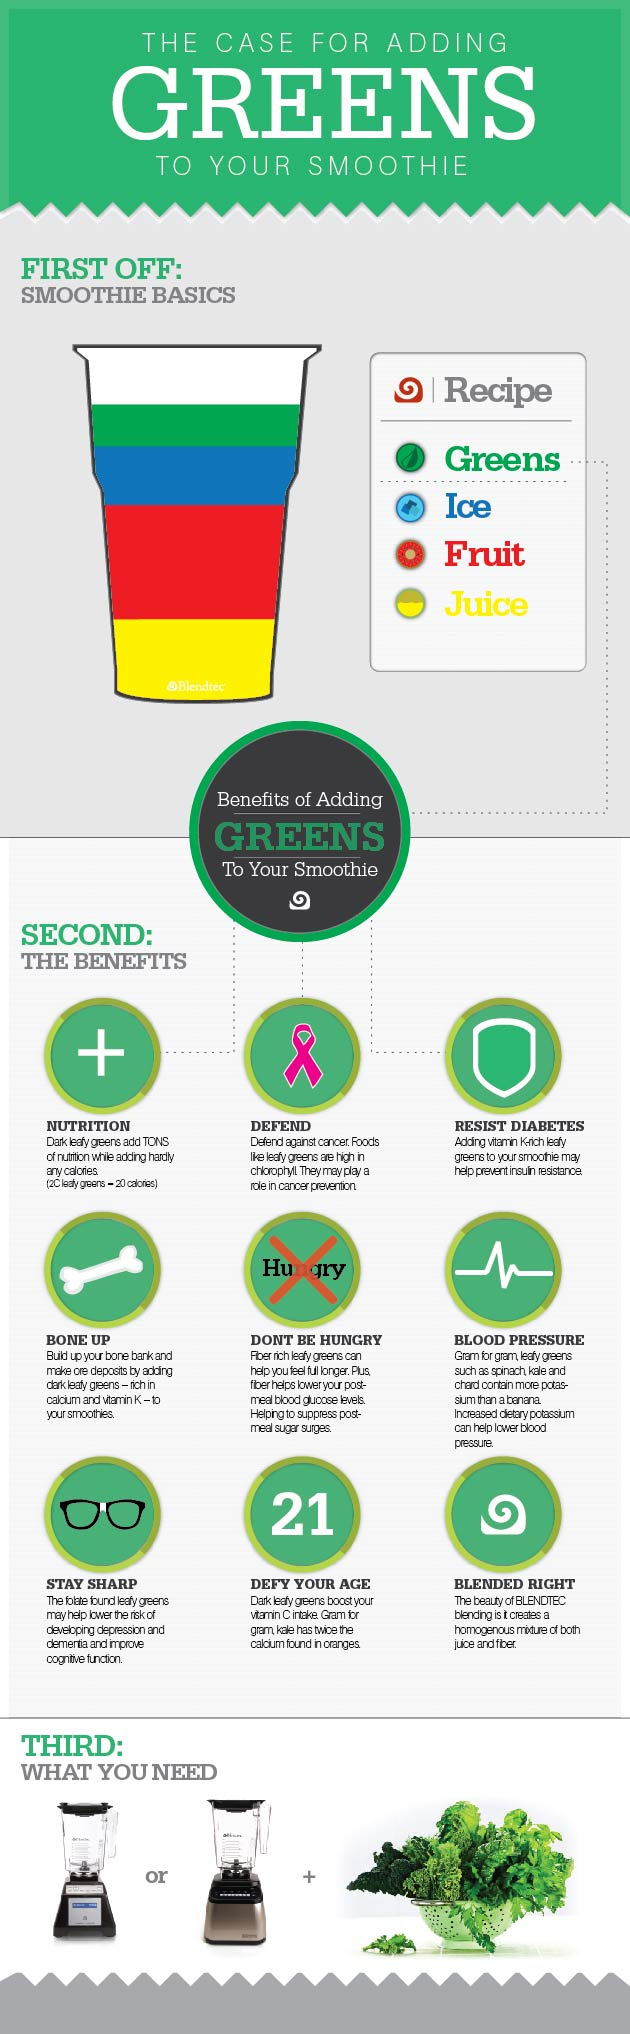 green smoothie benefits